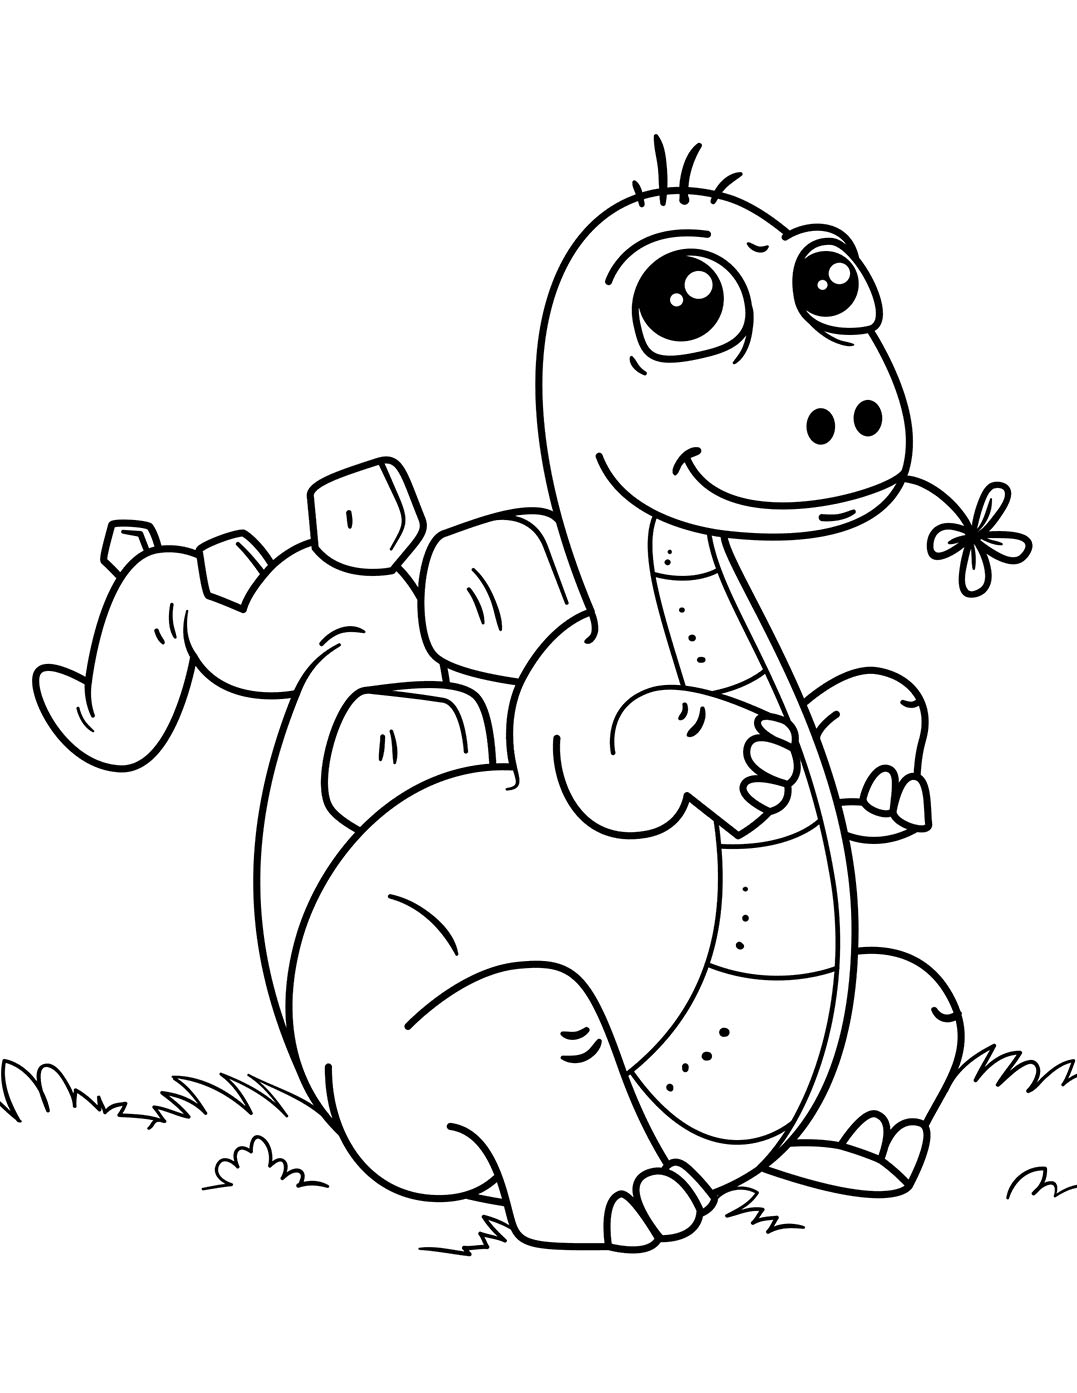 dinosaurs coloring page coloring pages from the animated tv series dinosaur train coloring page dinosaurs